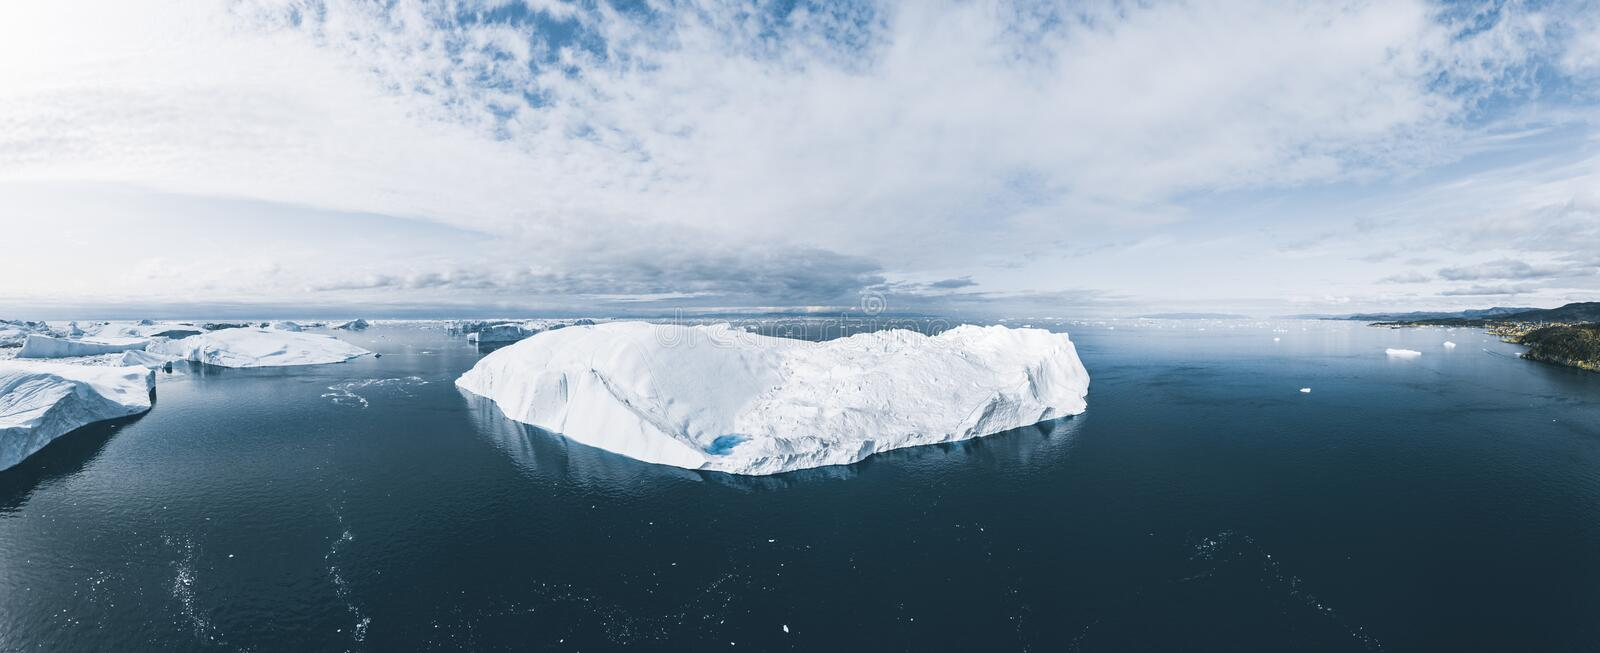 Icebergs drone aerial image top view - Climate Change and Global Warming. Icebergs from melting glacier in icefjord in royalty free stock photography